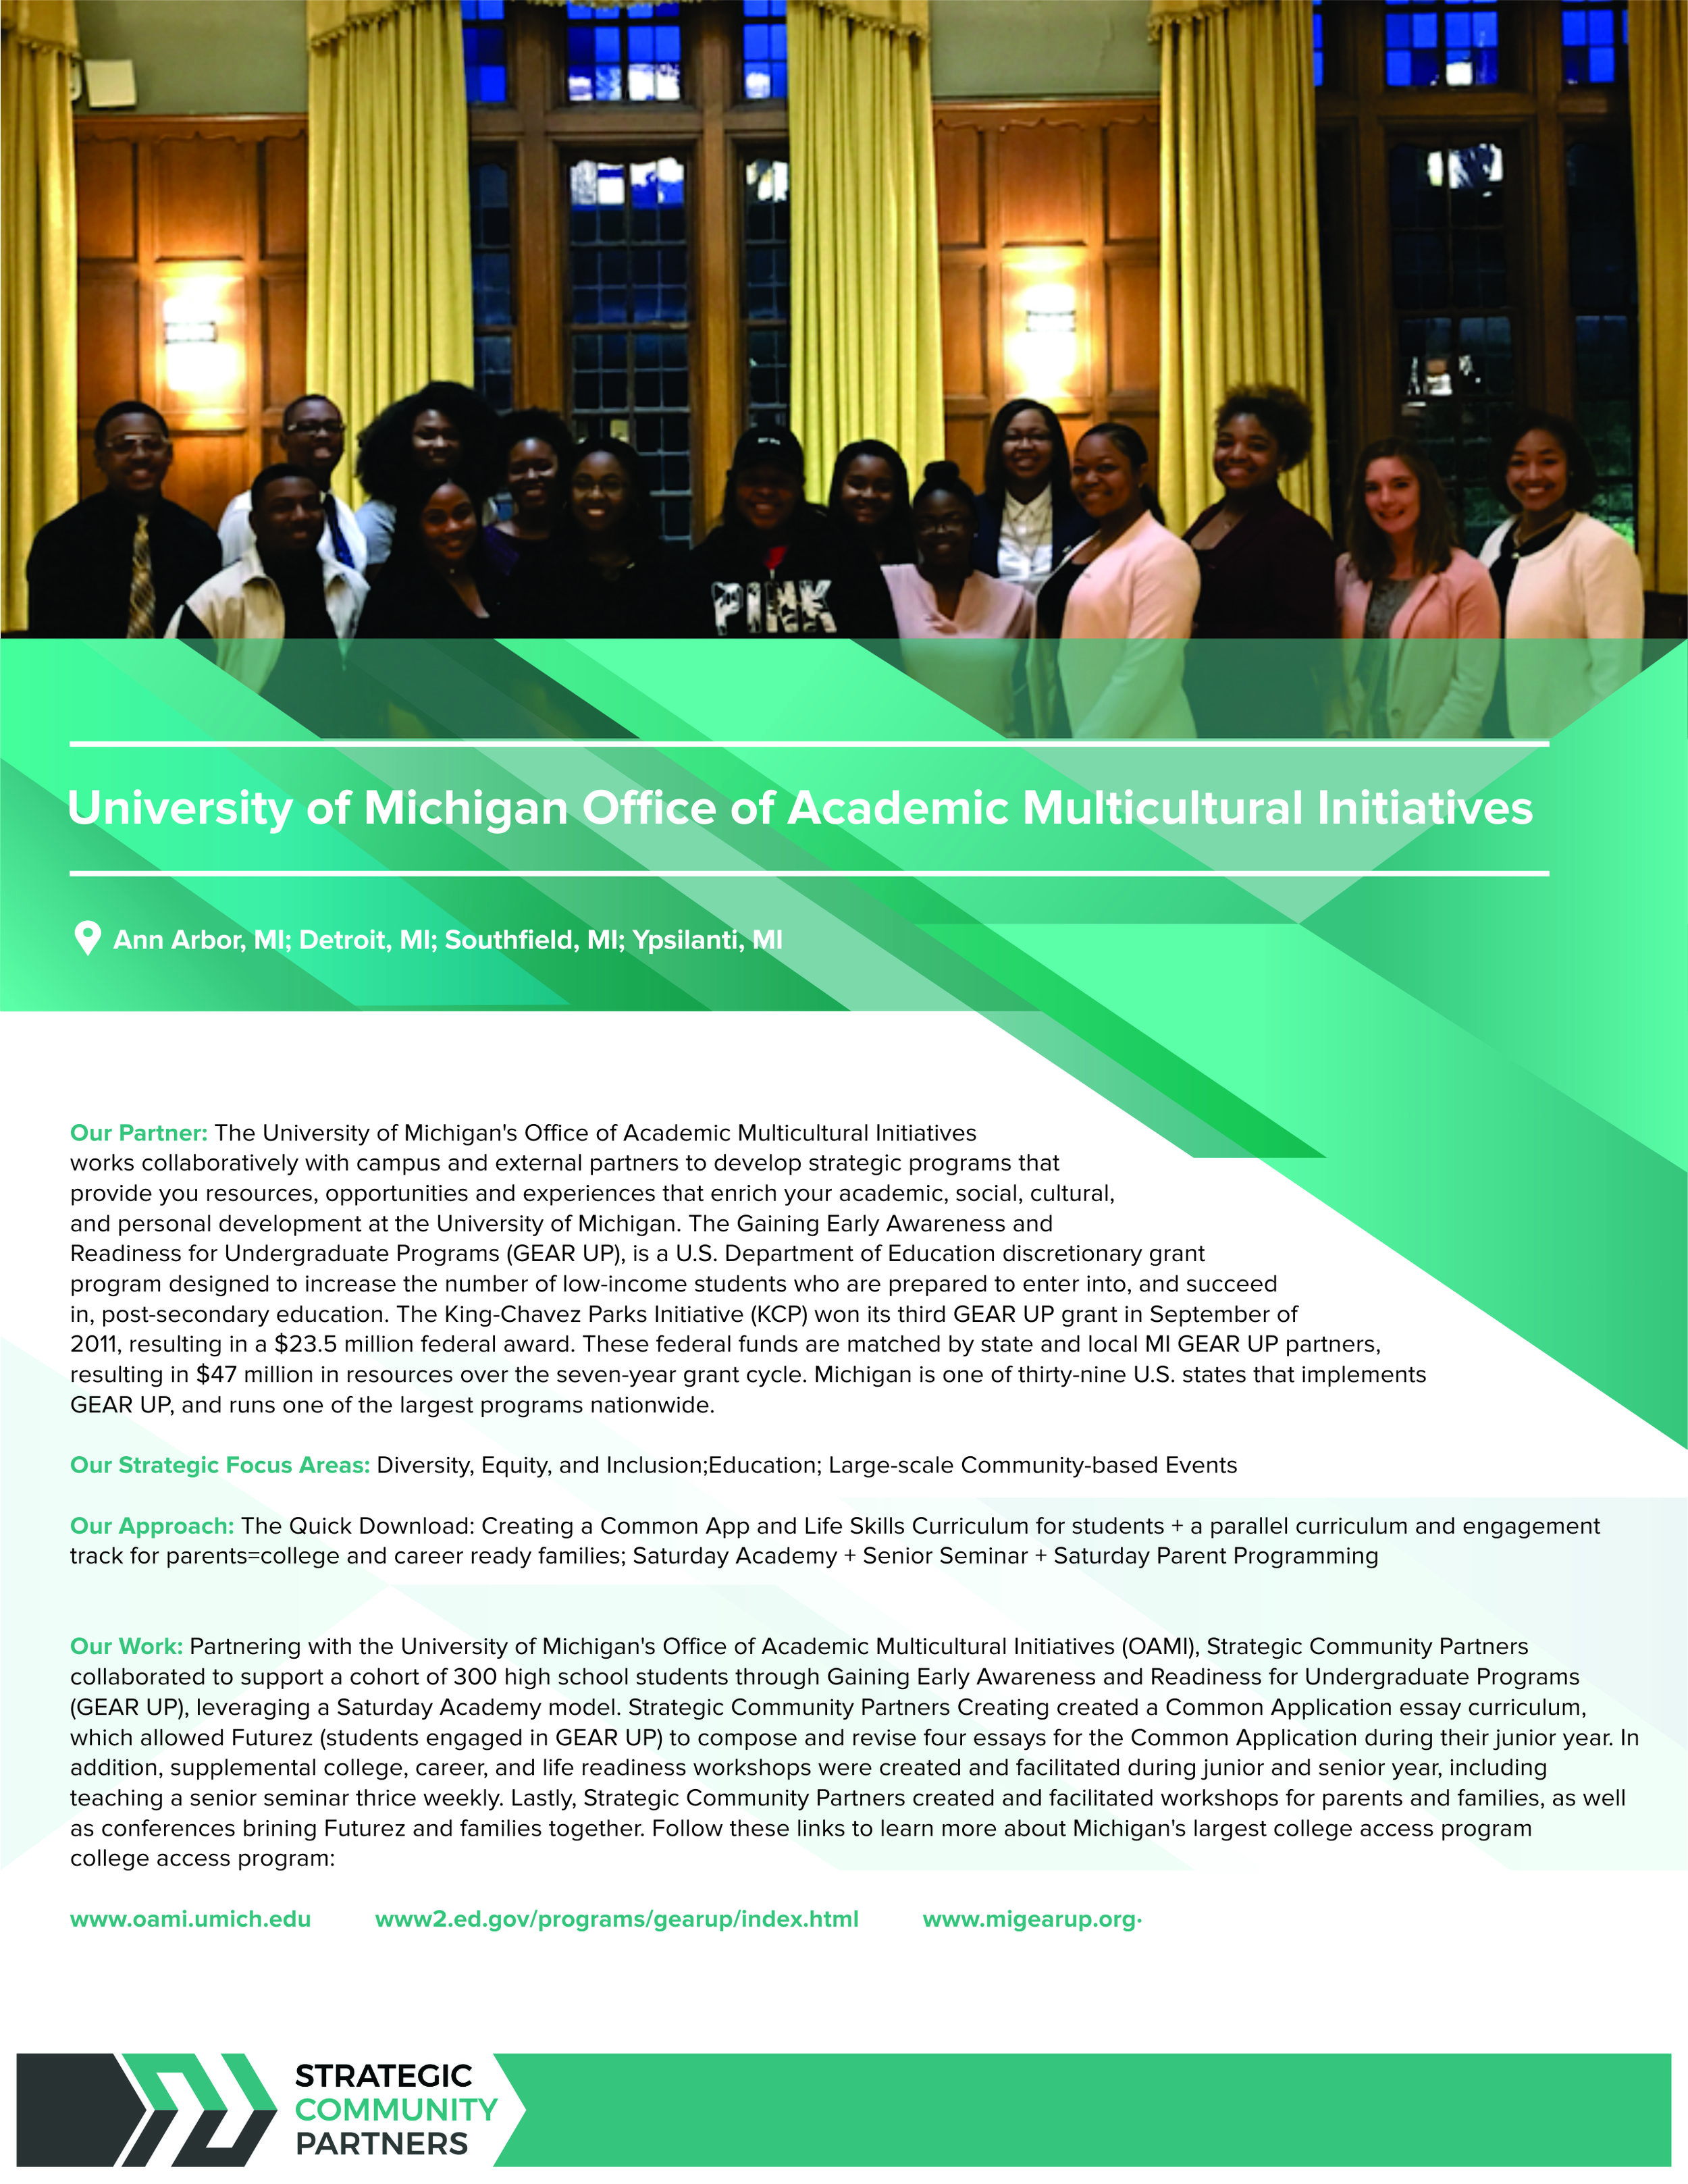 University of Michigan Office of Academic Office of Multicultural Initiatives